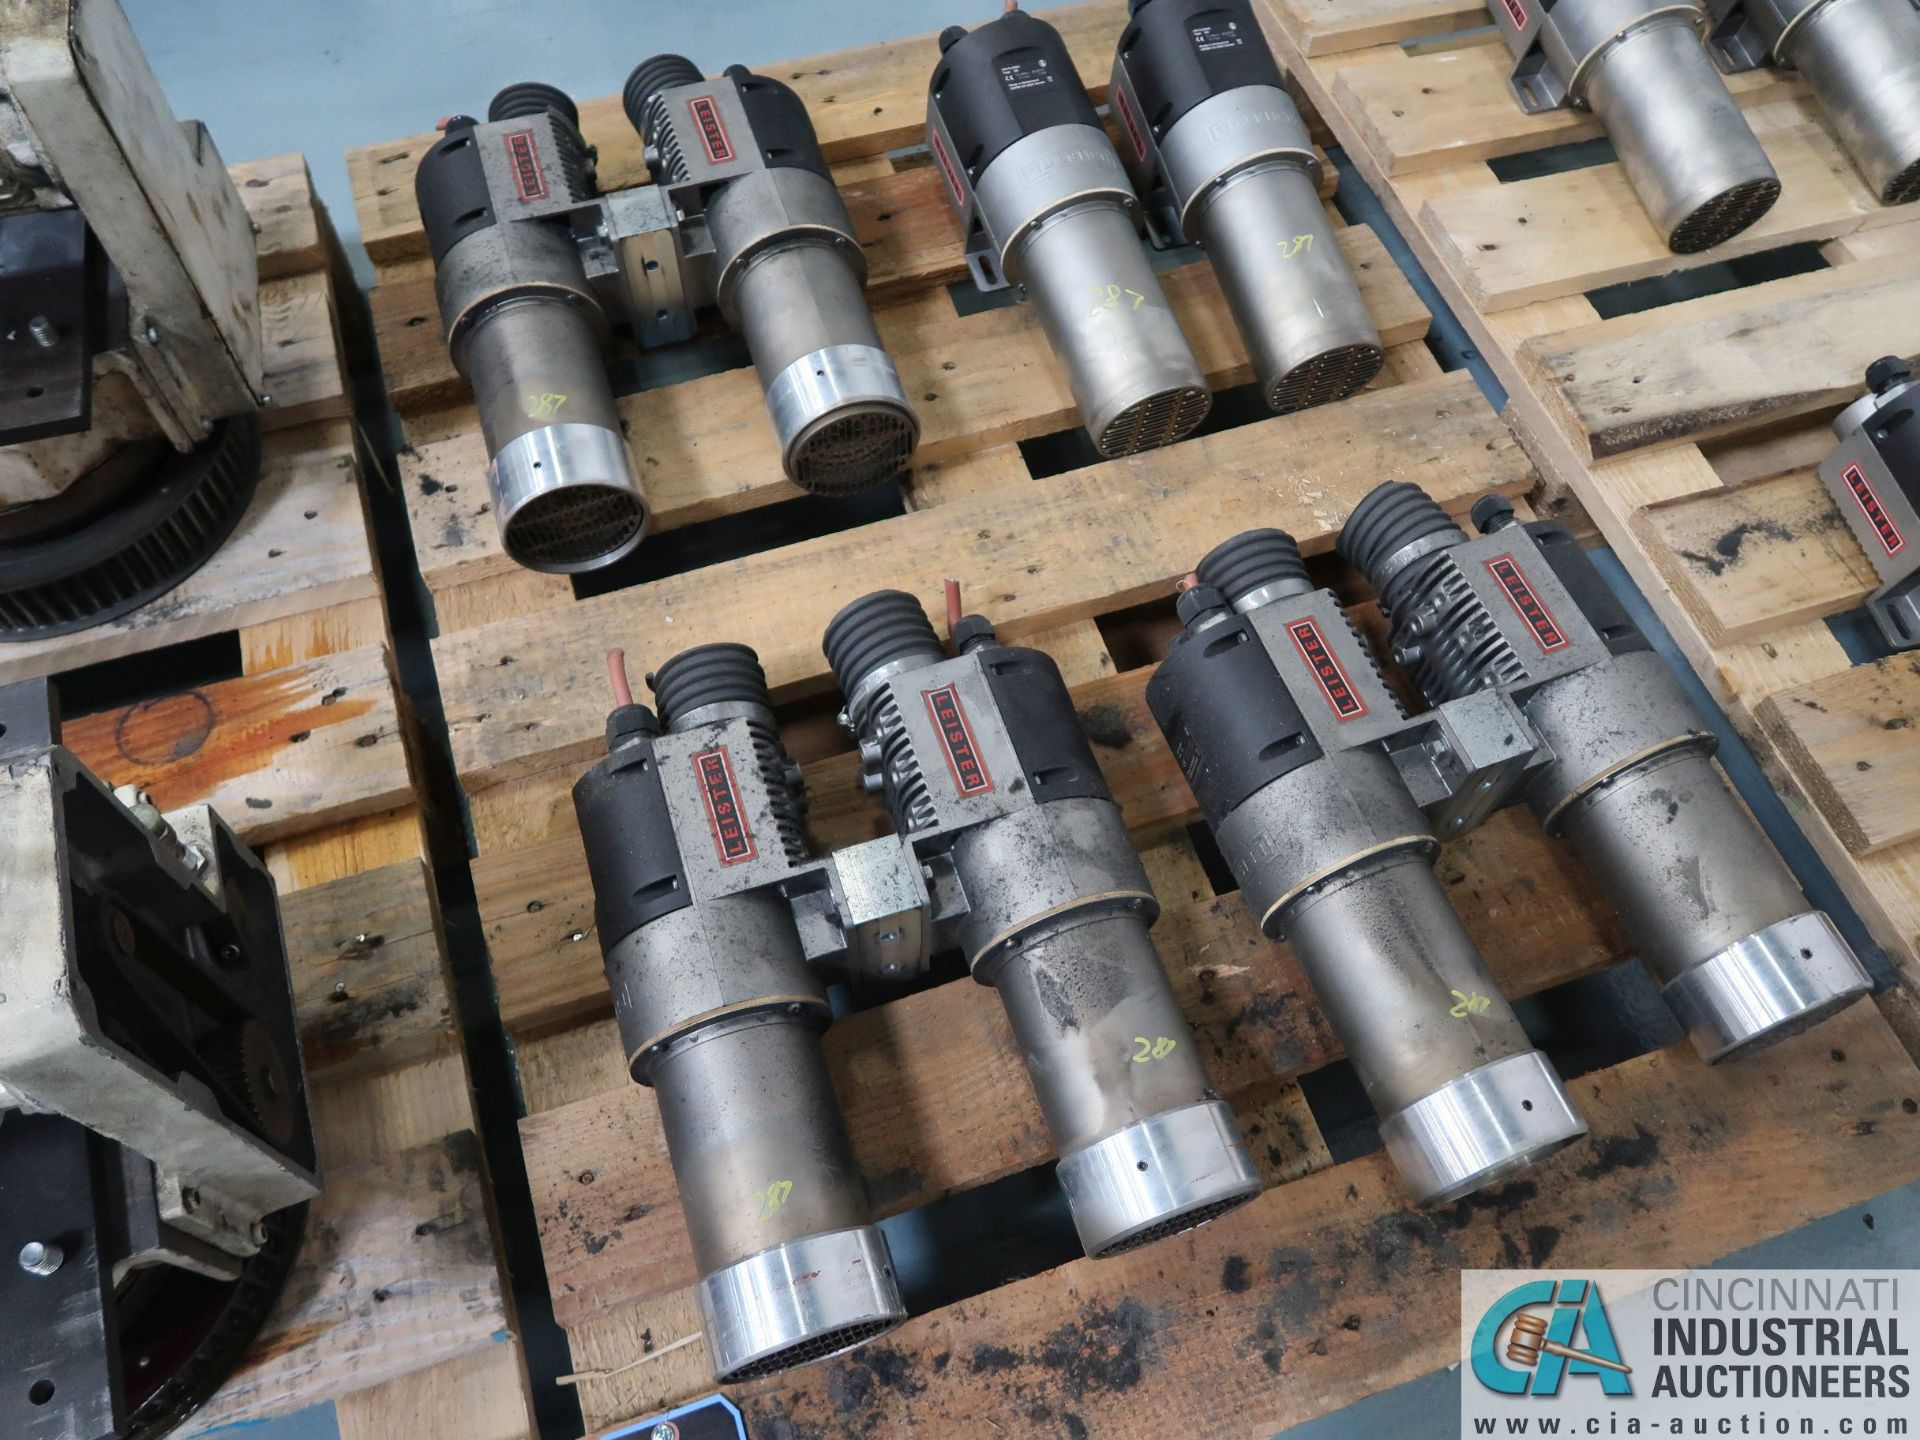 Lot 287 - 11 KW LEISTER BLOWER MOTORS *$25.00 RIGGING FEE DUE TO INDUSTRIAL SERVICES AND SALES*